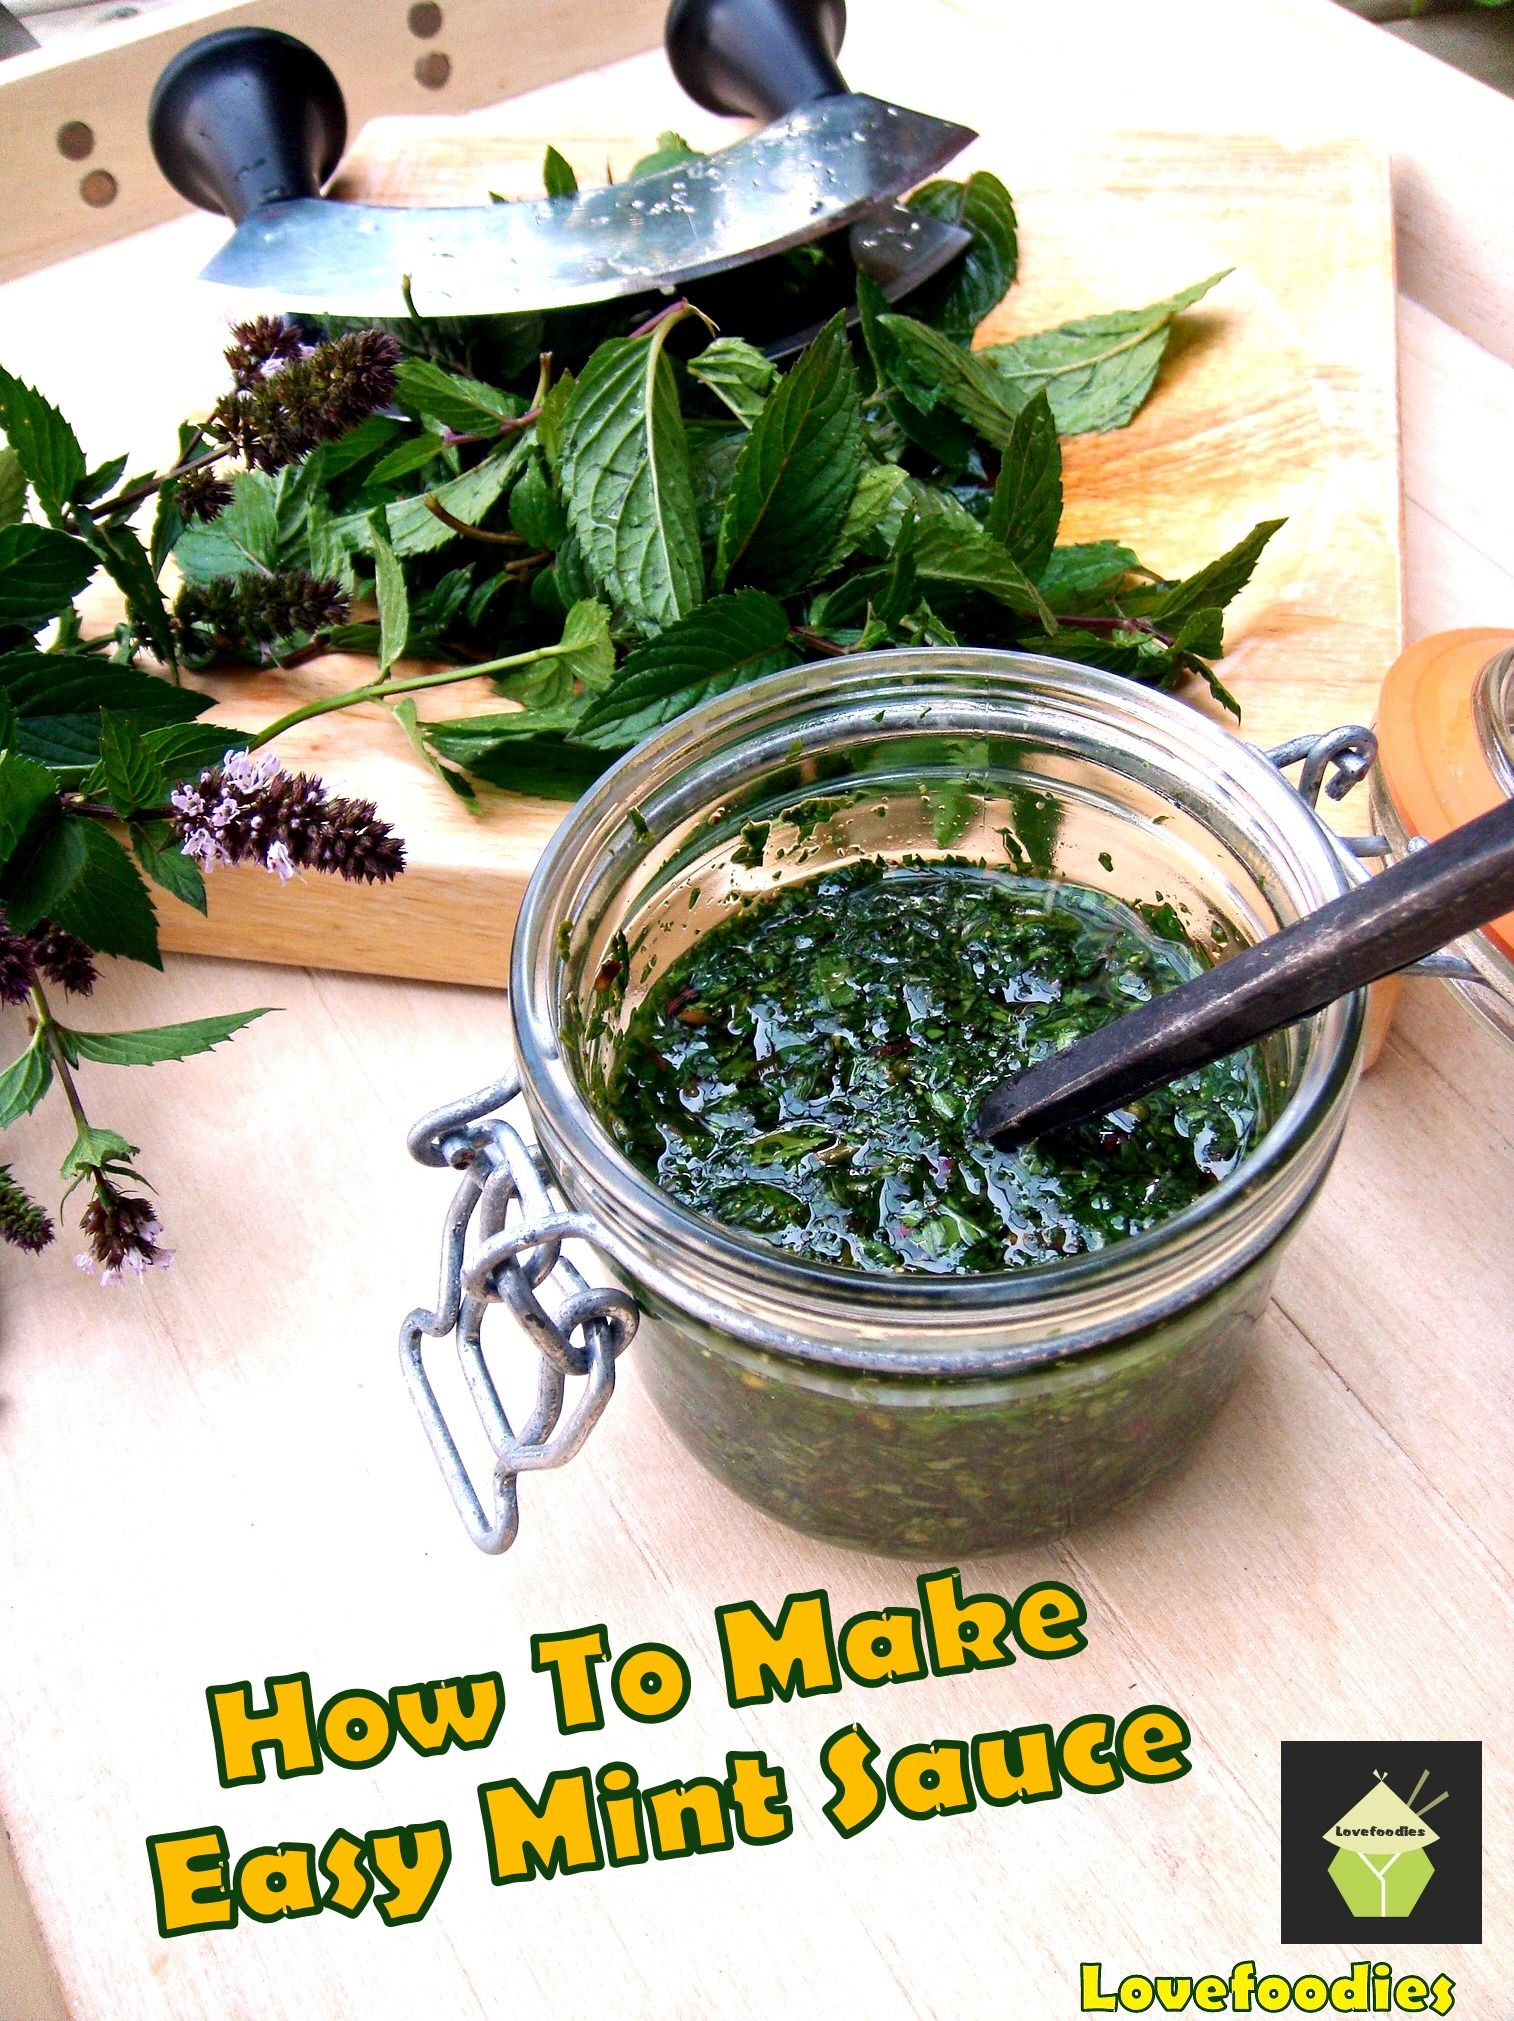 How To Make Easy Mint Sauce.  Simple, homemade recipe, great with a roast dinner or to use as a marinade! #mint #sauce #easyrecipe